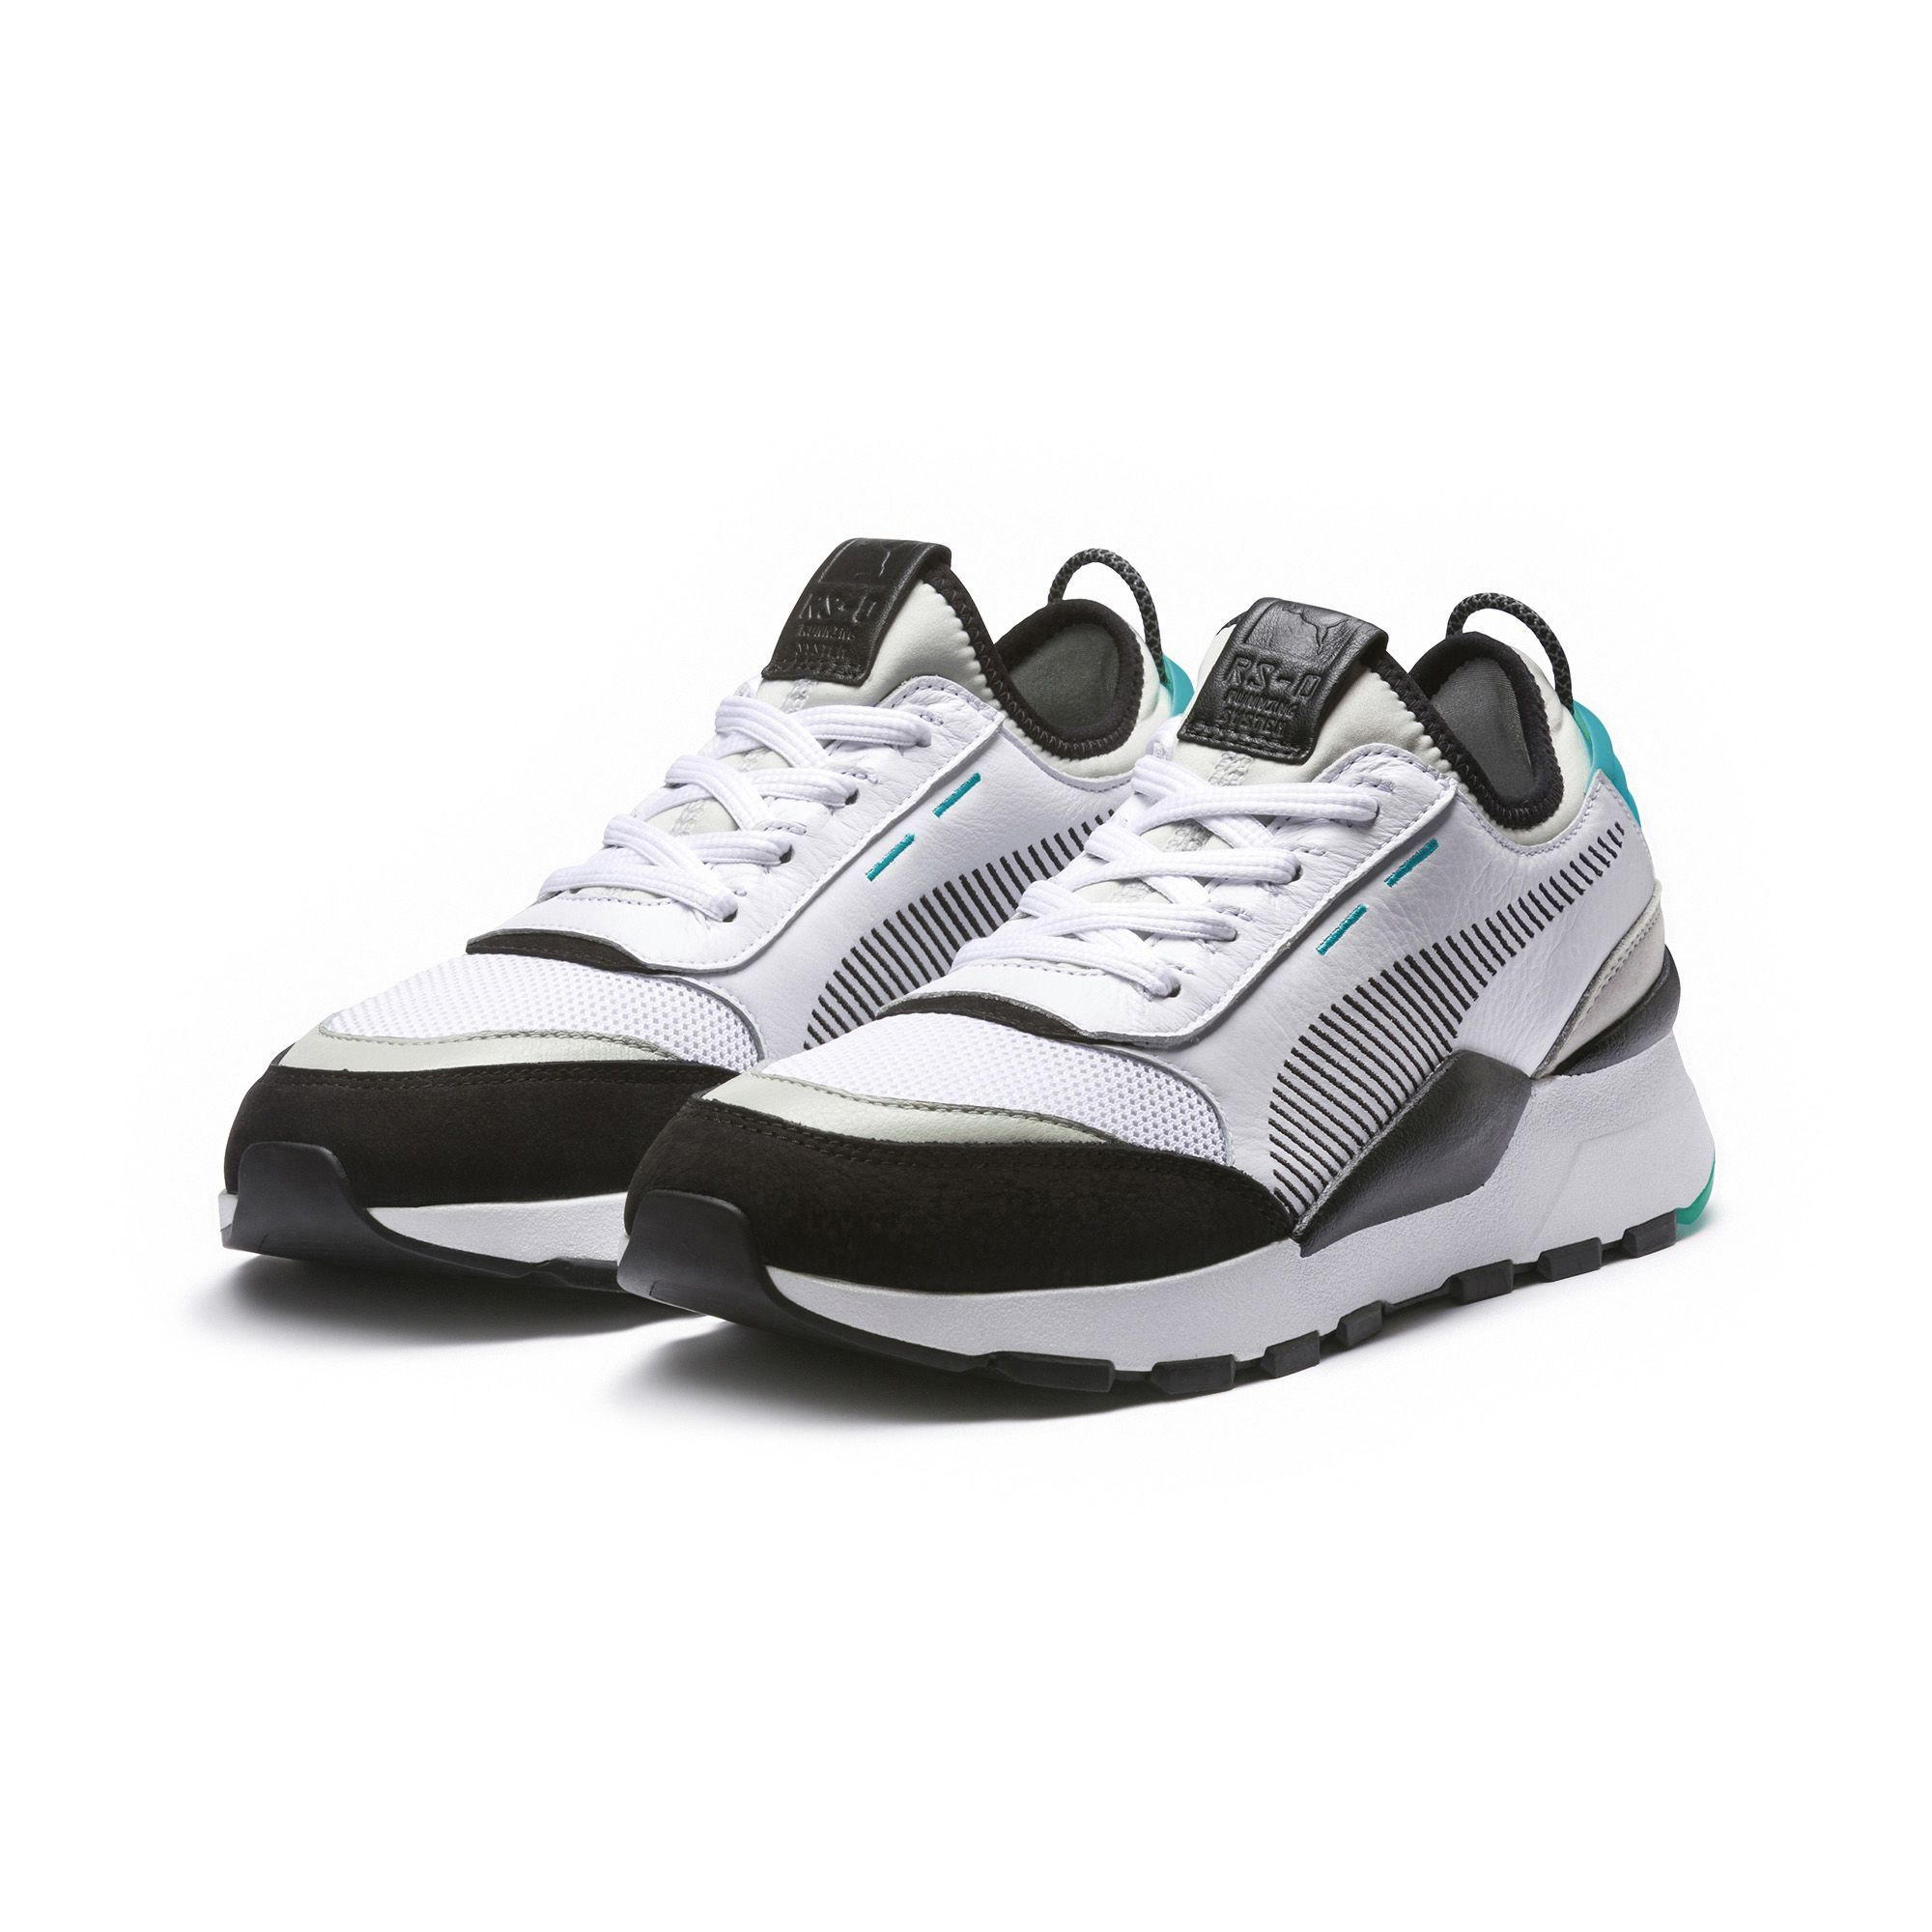 sports shoes 0288e d3796 RS-0 RE-INVENTION Sneakers   White-GrayViolet-BiscayGreen   PUMA New  Arrivals   PUMA United States